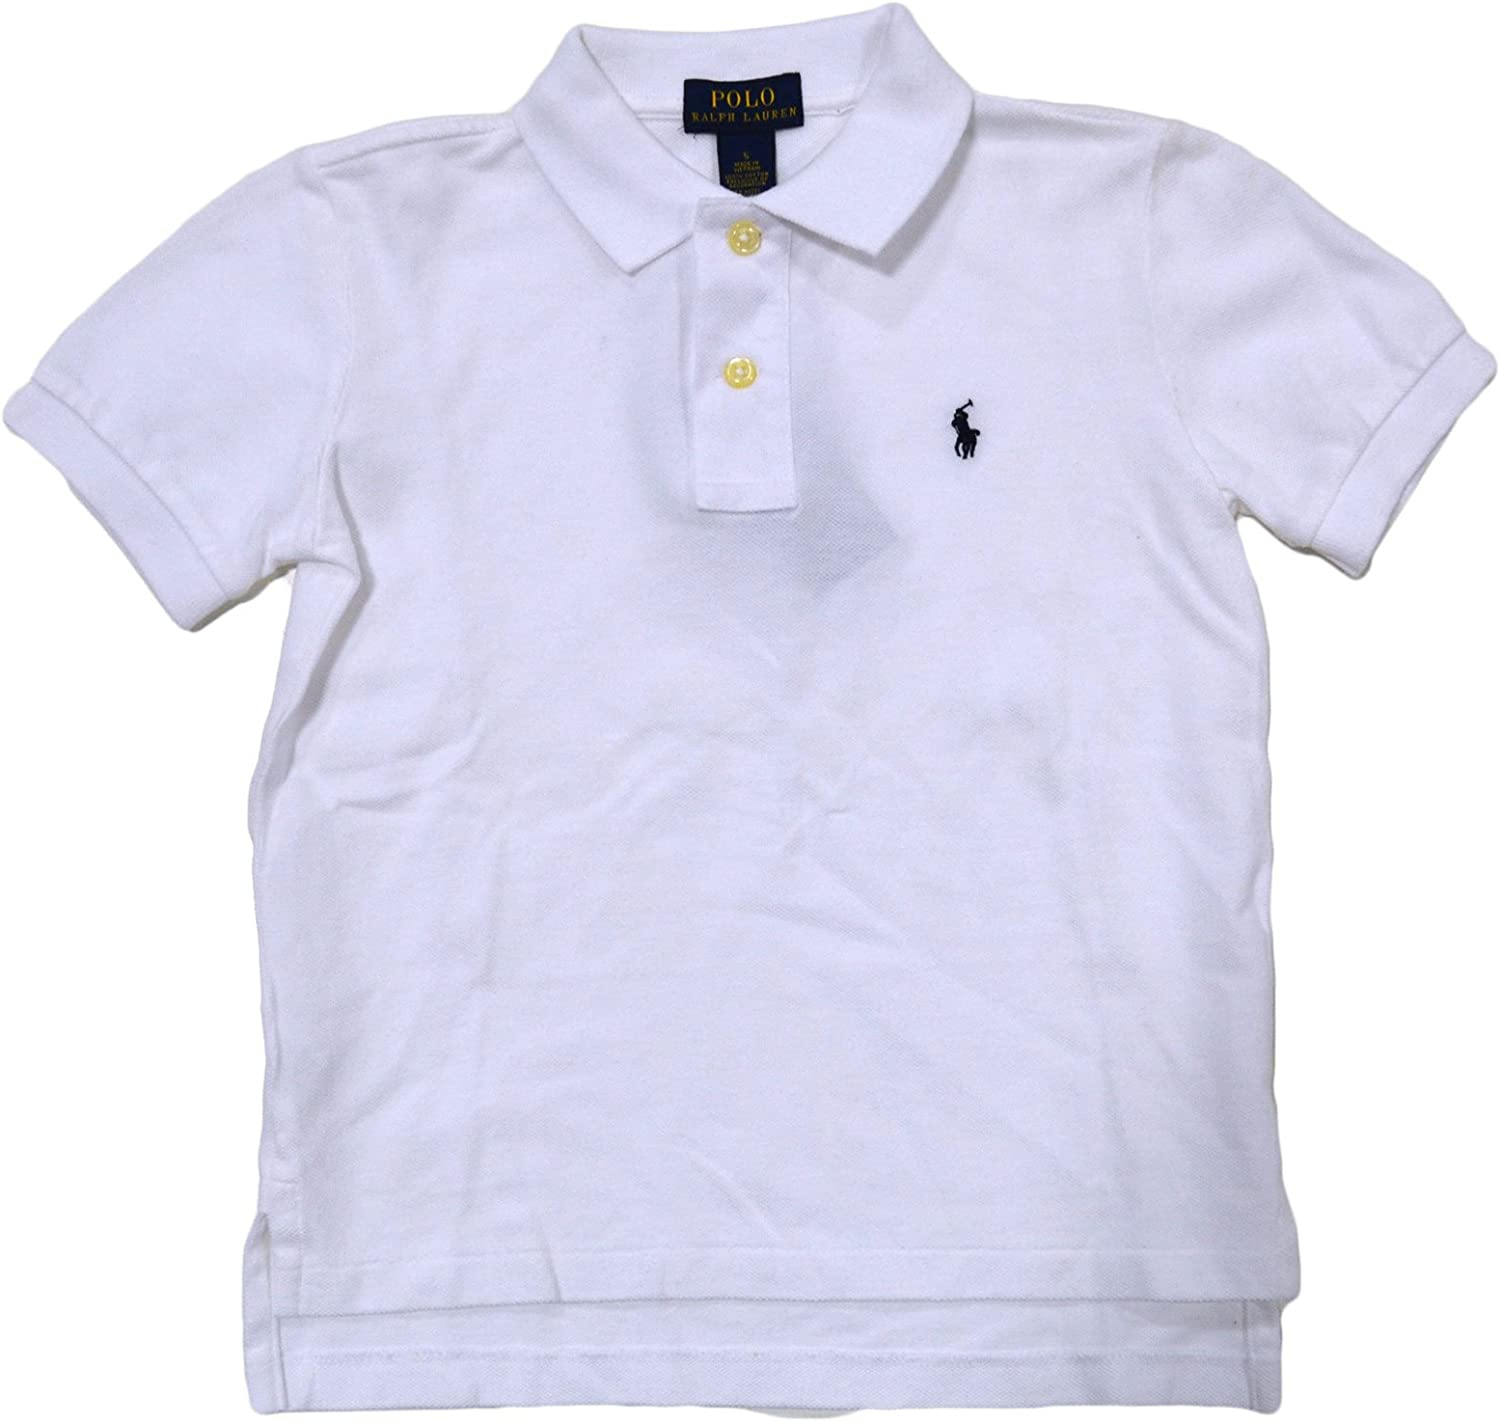 Polo Ralph Lauren Boys Toddlers Mesh Classic Polo Shirt Bright Blue